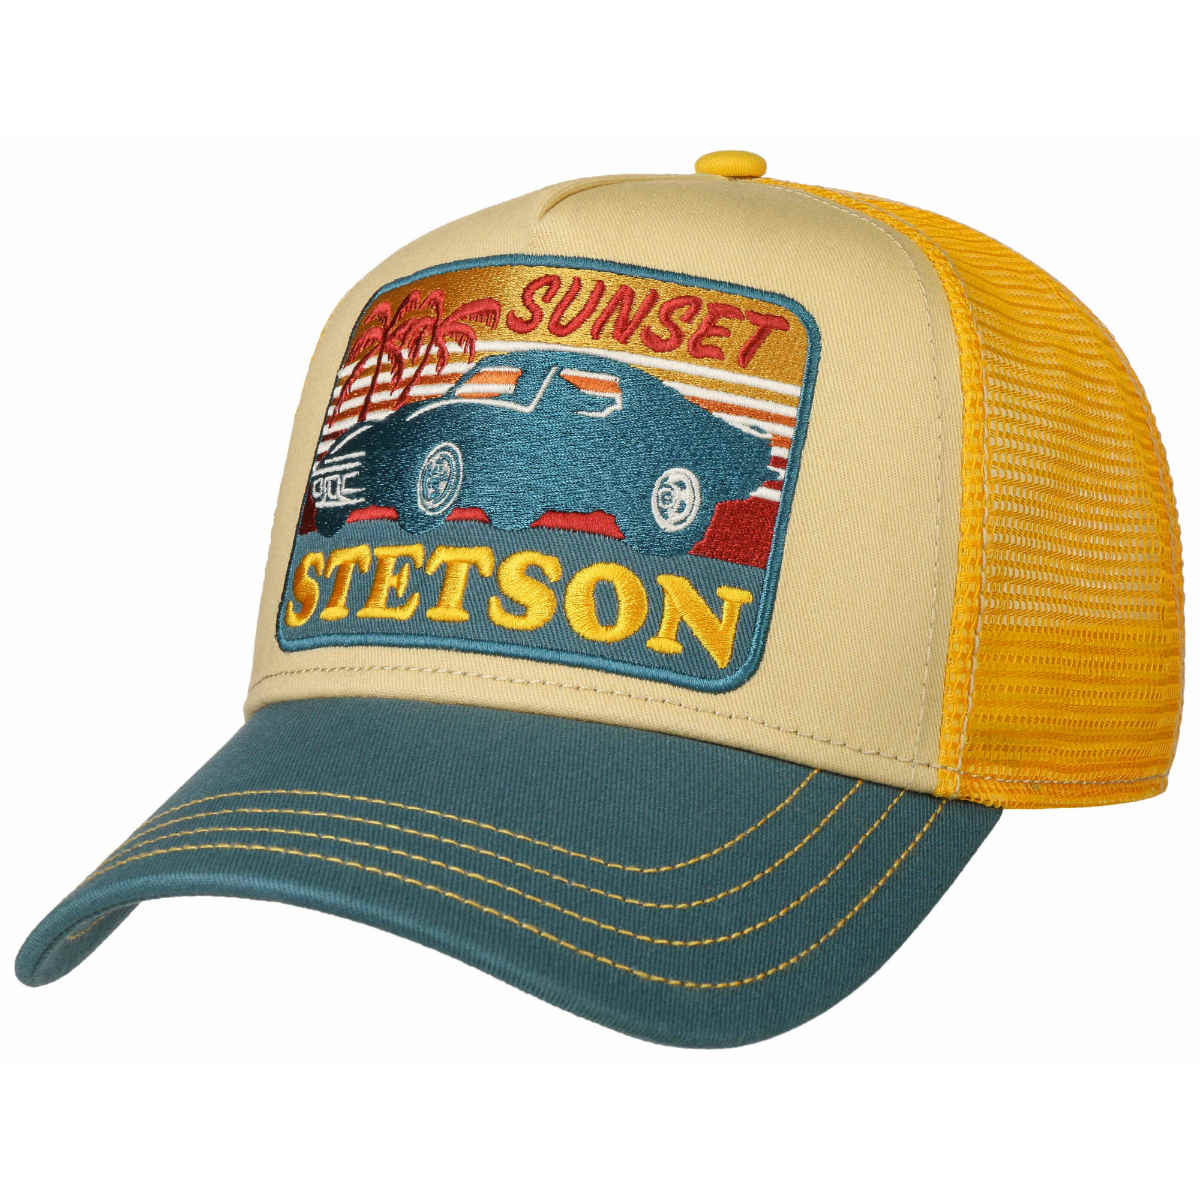 retro trucker cap sunset Stetson